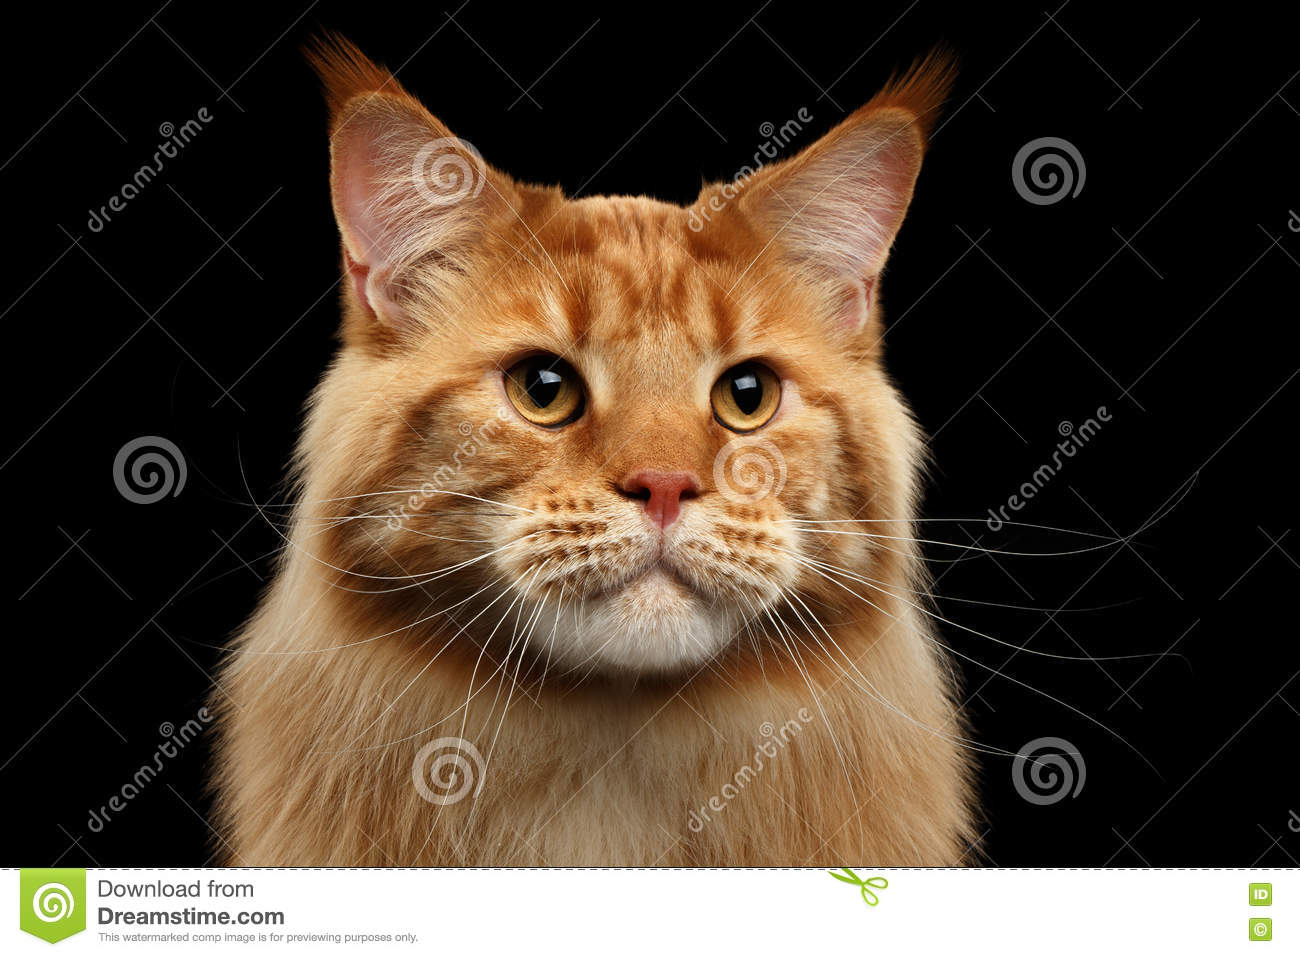 Close-up Ginger Maine Coon Cat Curious Looks, Geïsoleerde Zwarte Achtergrond